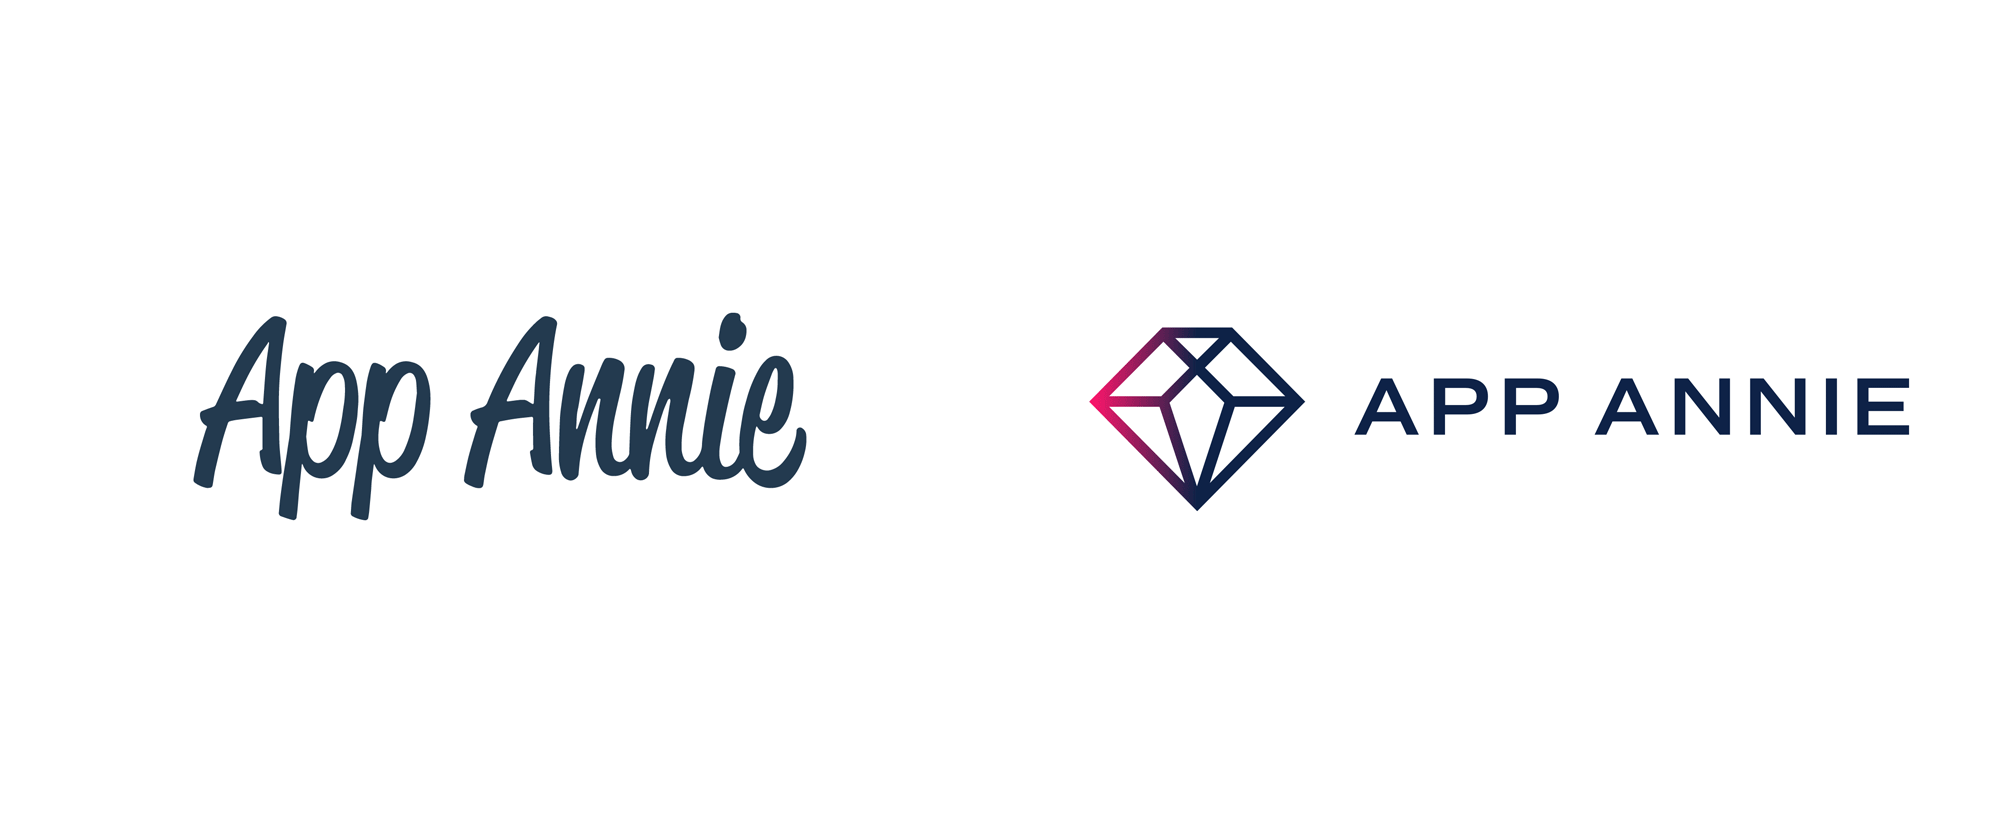 New Logo for App Annie done In-house